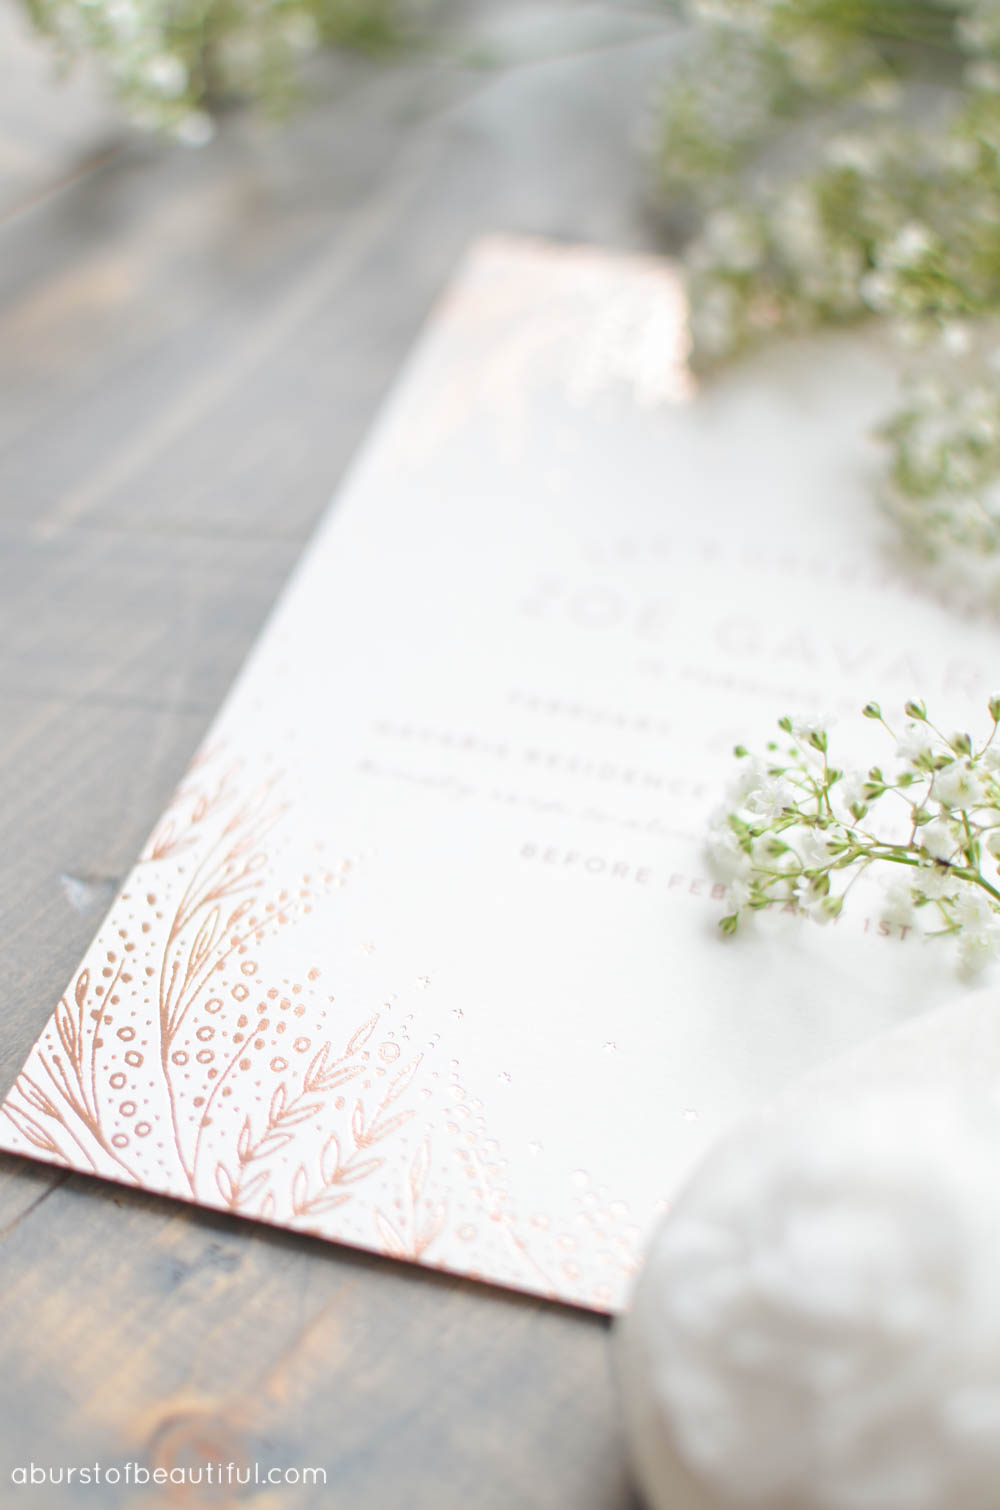 These beautiful hand-pressed foil invitations add a special touch to a vintage-inspired first birthday party | A Burst of Beautiful